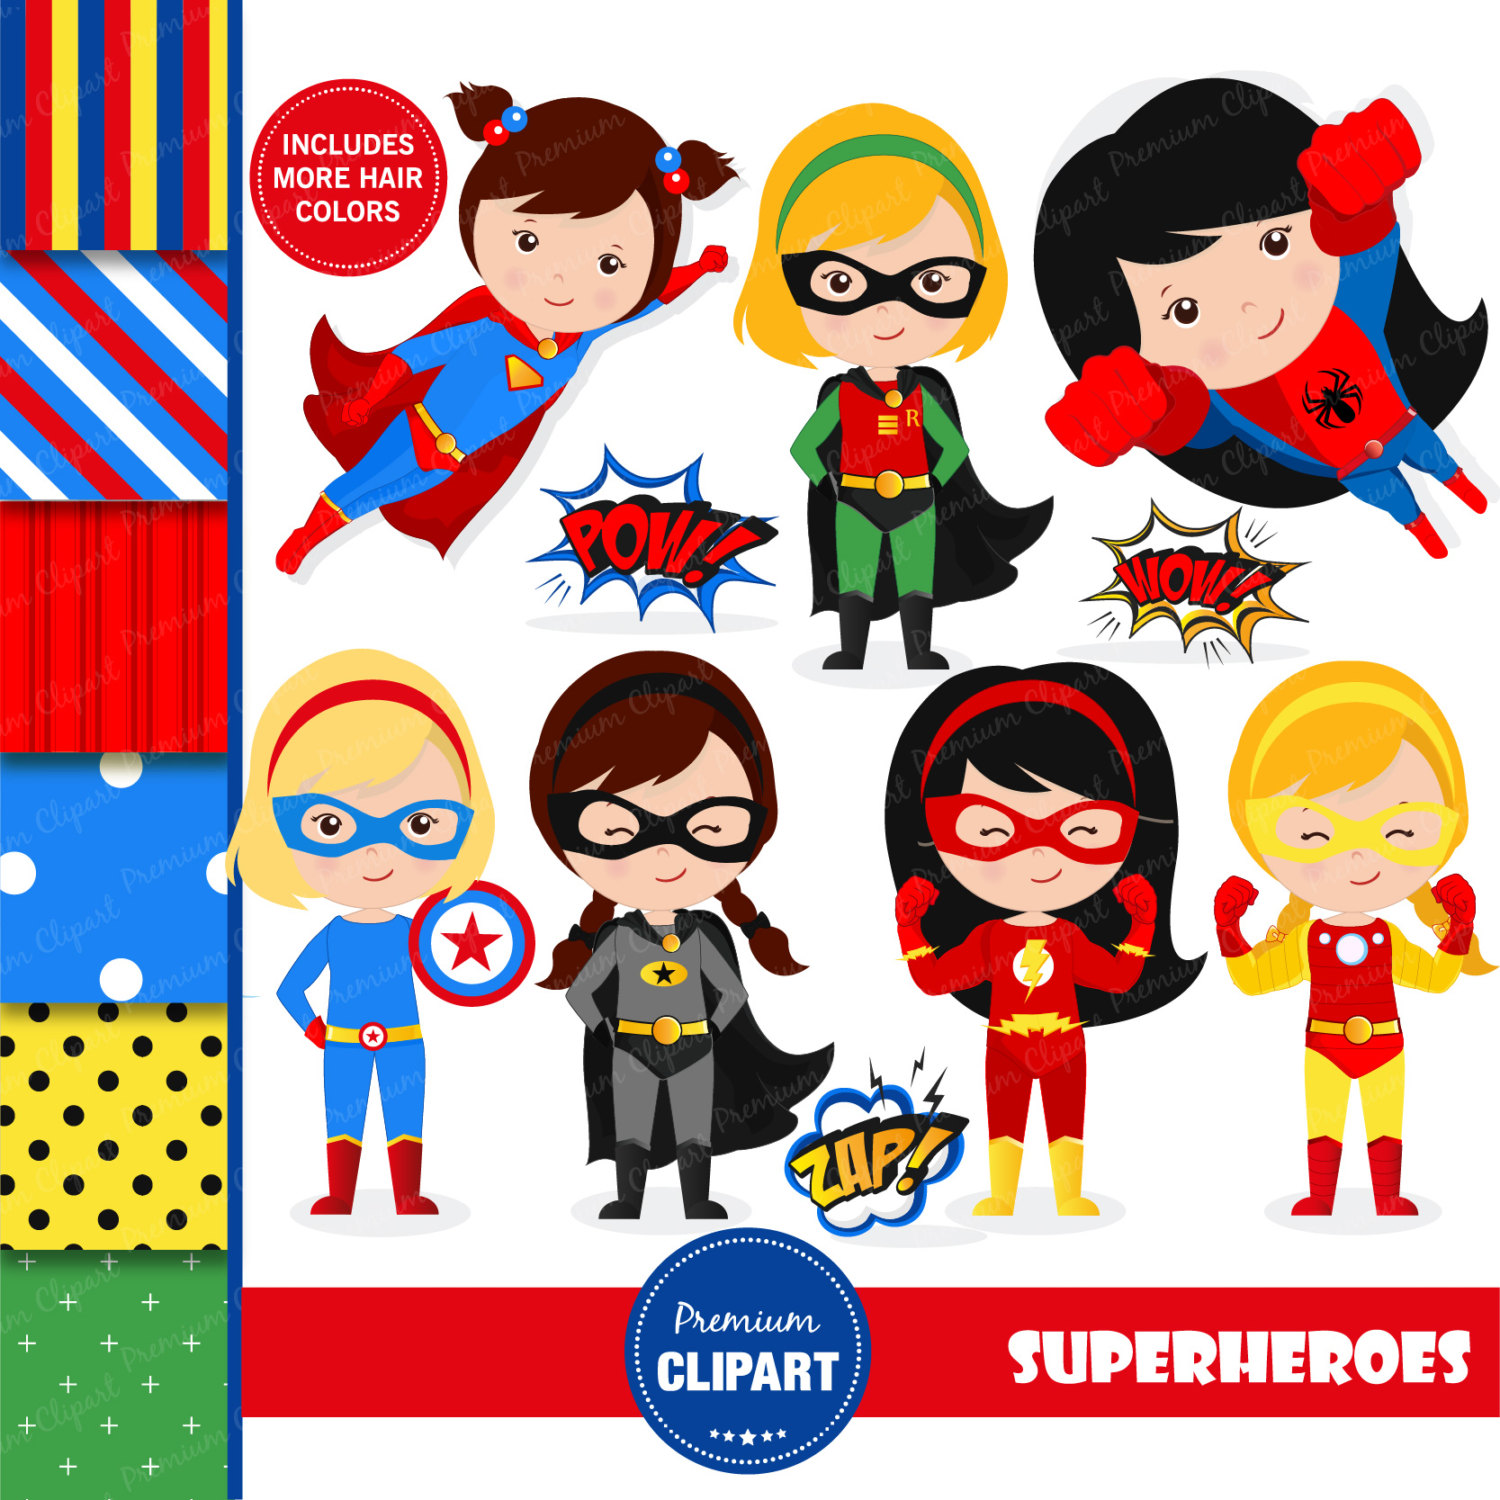 Flash clipart supe hero This is girl Superhero clipart